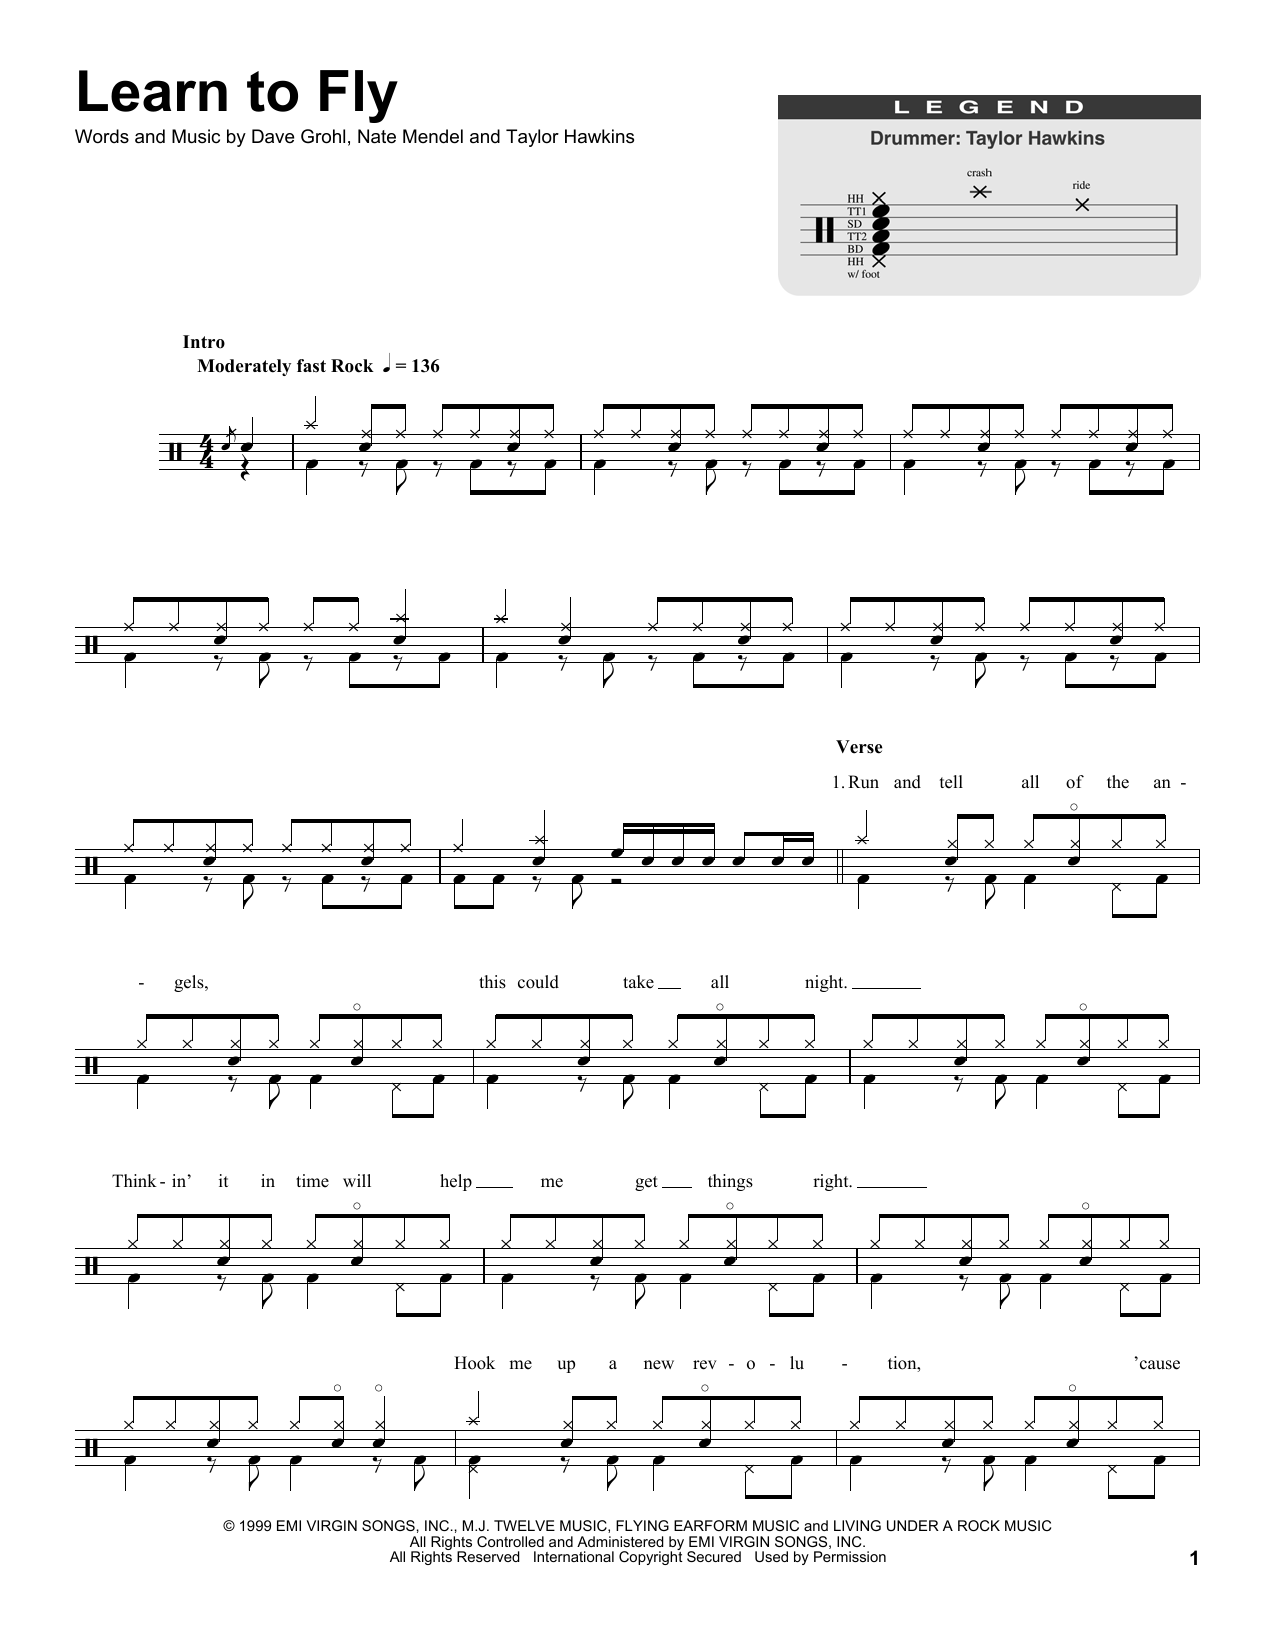 Learn To Fly Sheet Music